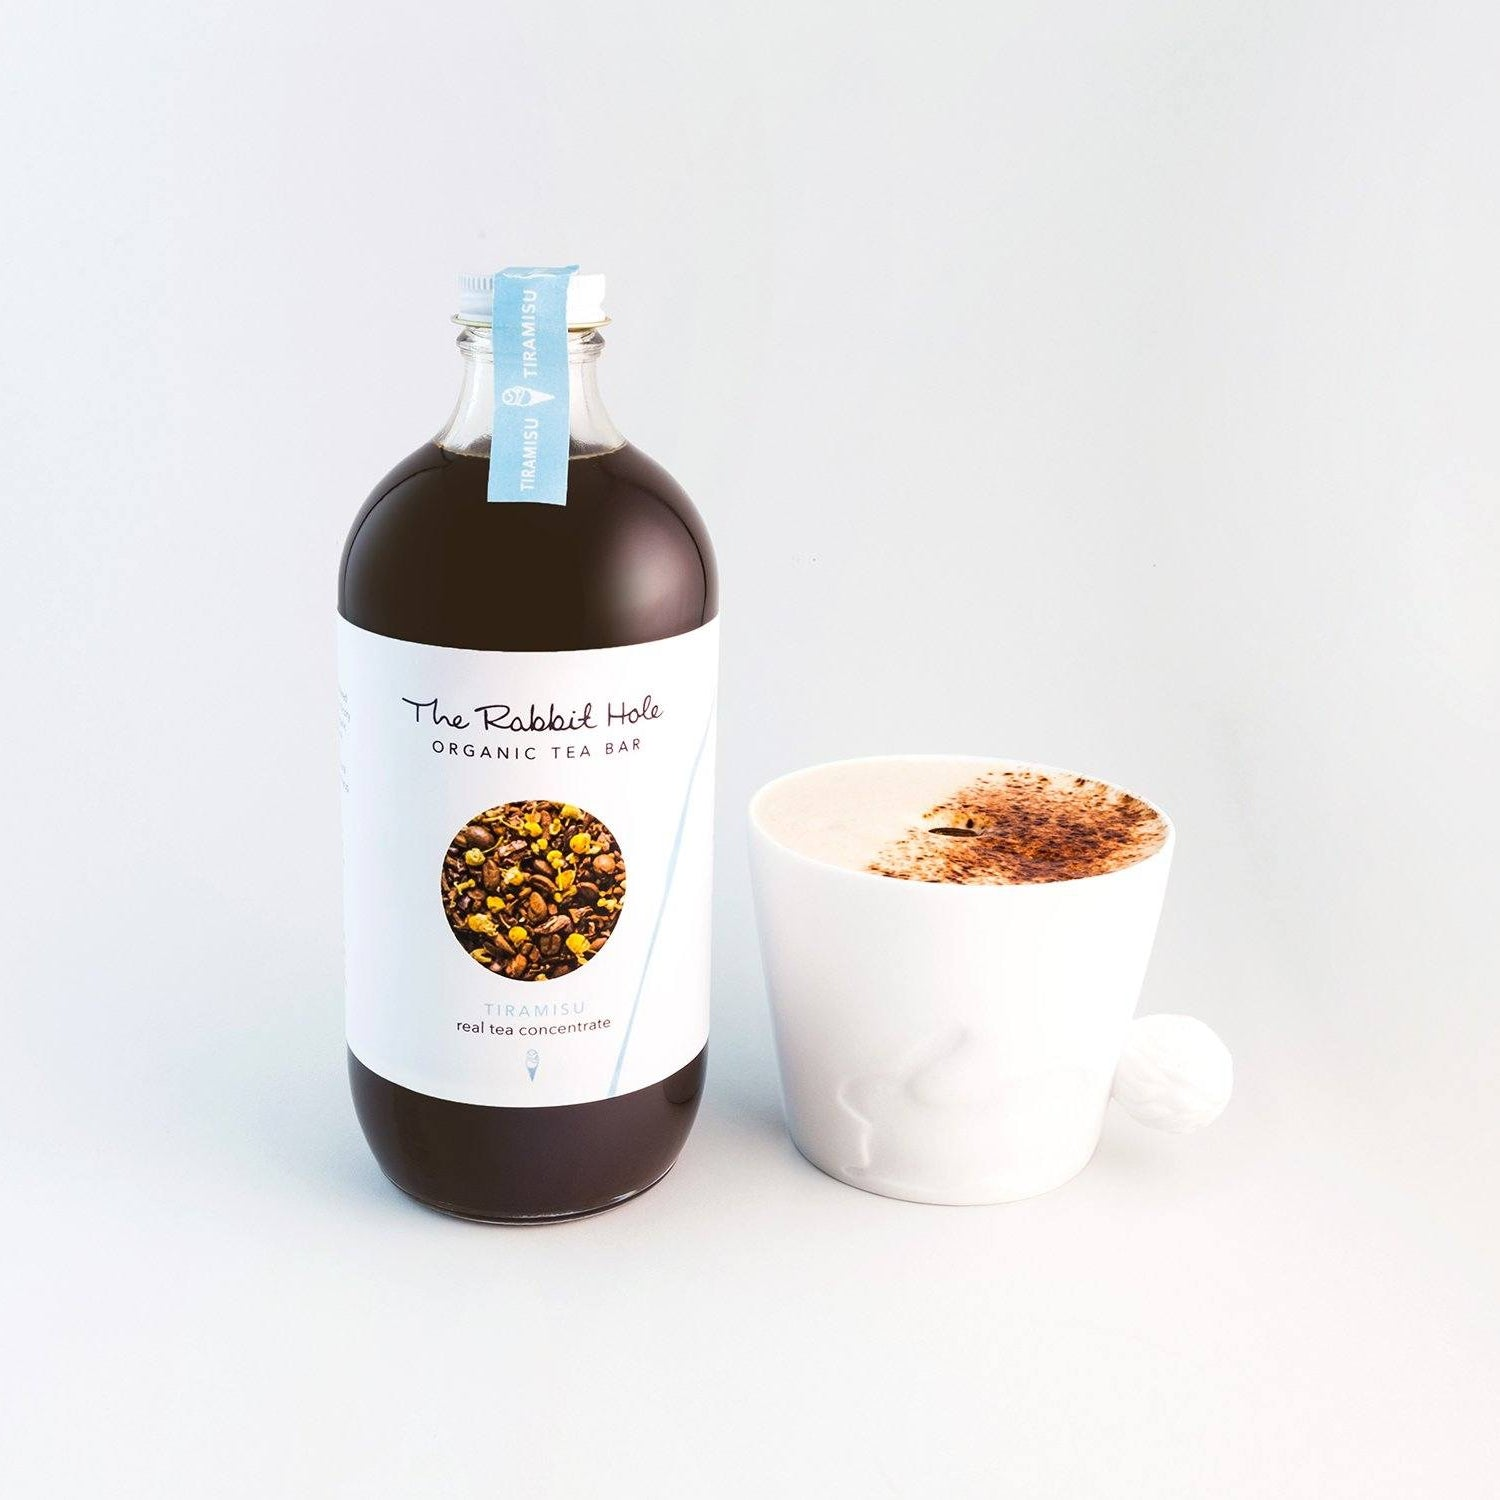 Tiramisu real Tea Mixer Gifts The Rabbit Hole - Australian Made Tea - real tea concentrate - bottle with a tea latte in a  white cup